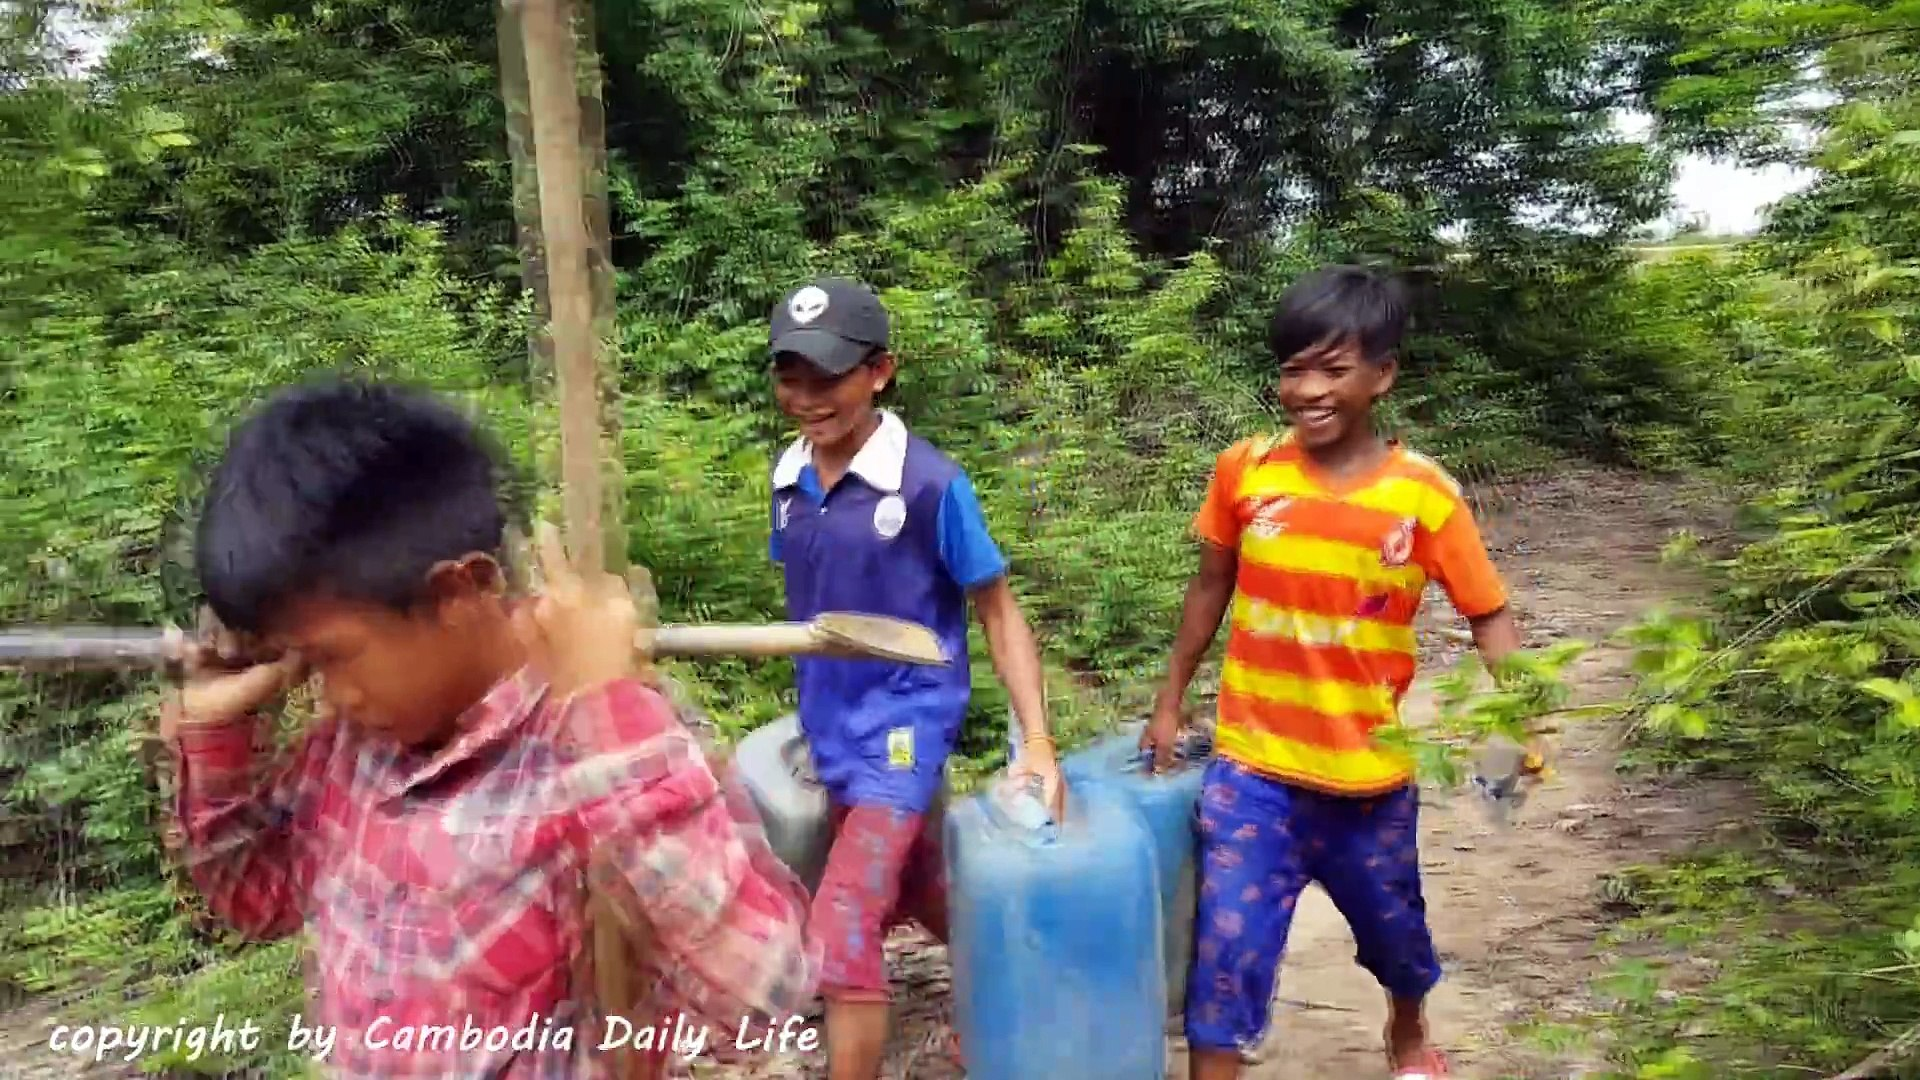 Amazing Smart Children Catch Tree Snake Using Oil Tank Trap - How To Catch Tree Snake With Trap